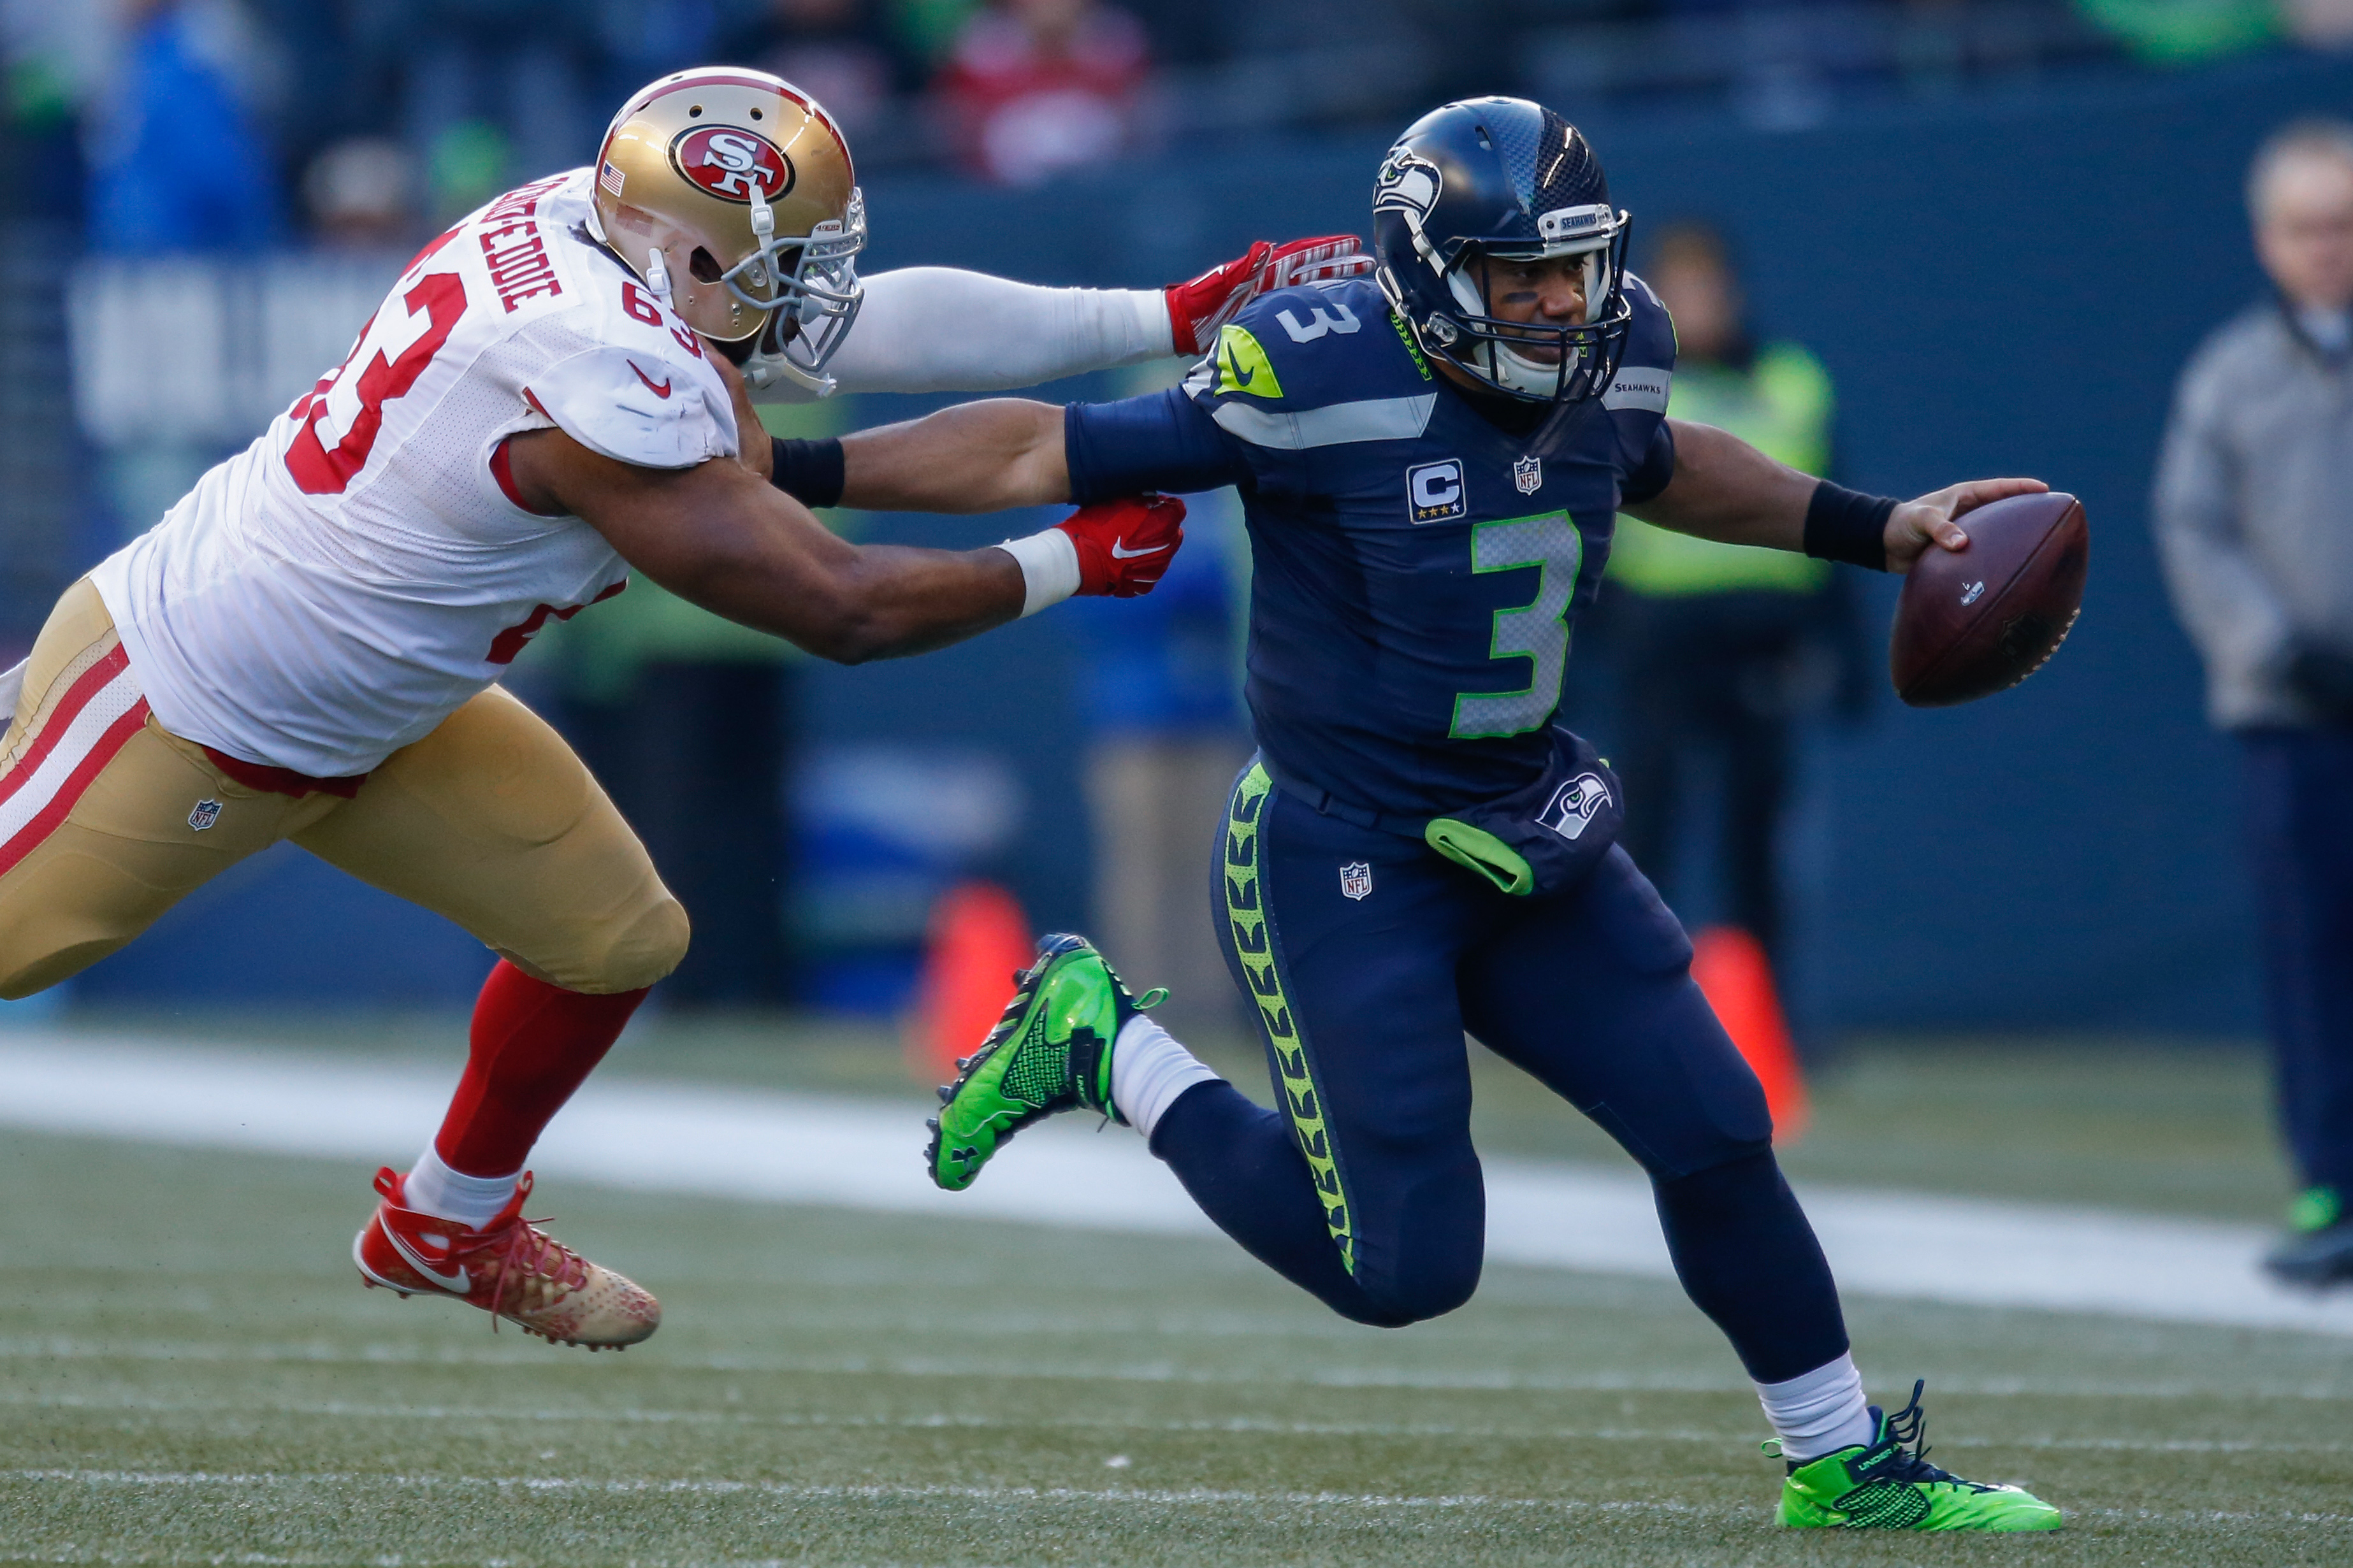 Seahawks cornerback Richard Sherman is questionable for 49ers game